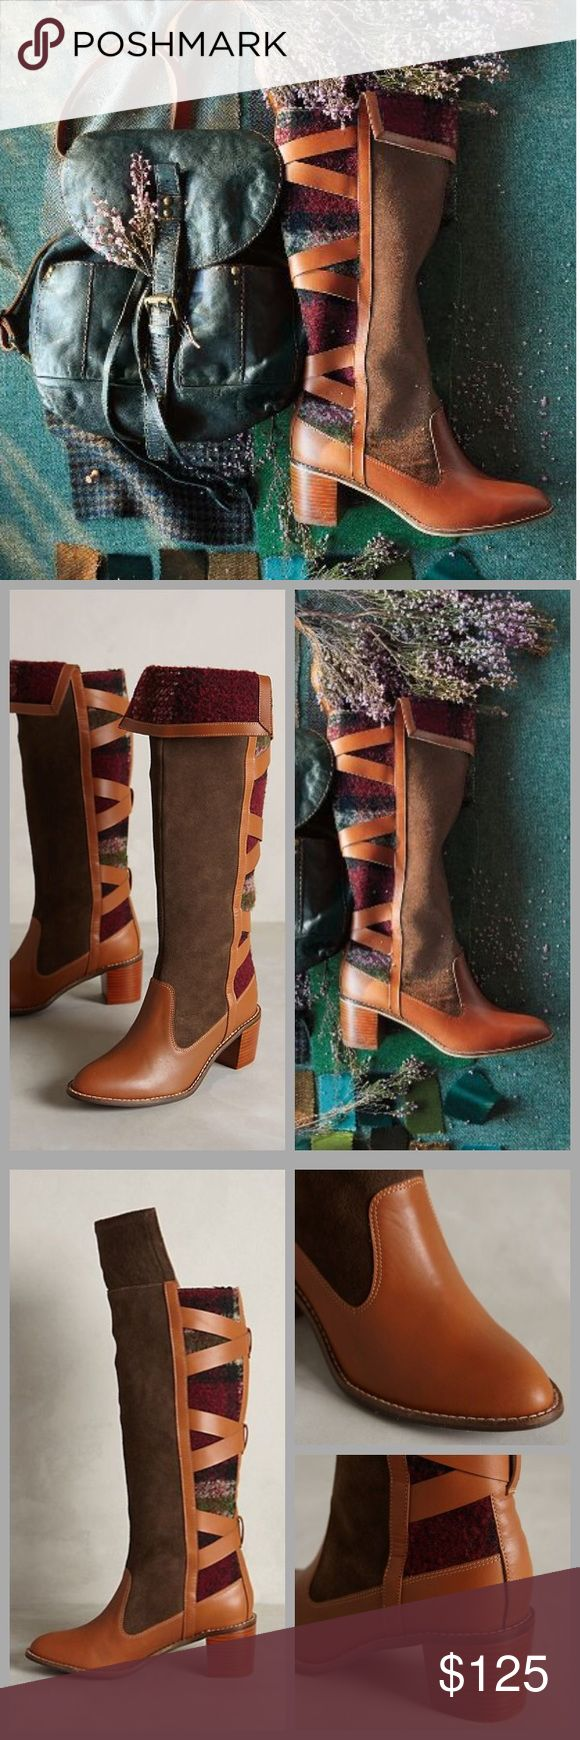 """❤️Anthropologie Wheat Ridge Boots❤️ Worn only twice- a few light scuffs. I will only consider reasonable offers through the offer button, NO TRADES!  Harkening back to the craft of the neighborhood cobbler, Schuler & Sons combine leather and wool work in tandem to create a tall boot with warmth and style. We'd pair them with tucked-in skinnies and a pintucked top.   By Schuler & Sons Fits true to size Leather, wool upper Leather insole Synthetic sole 2.25"""" stacked leather heel 13.75""""H; 14""""…"""